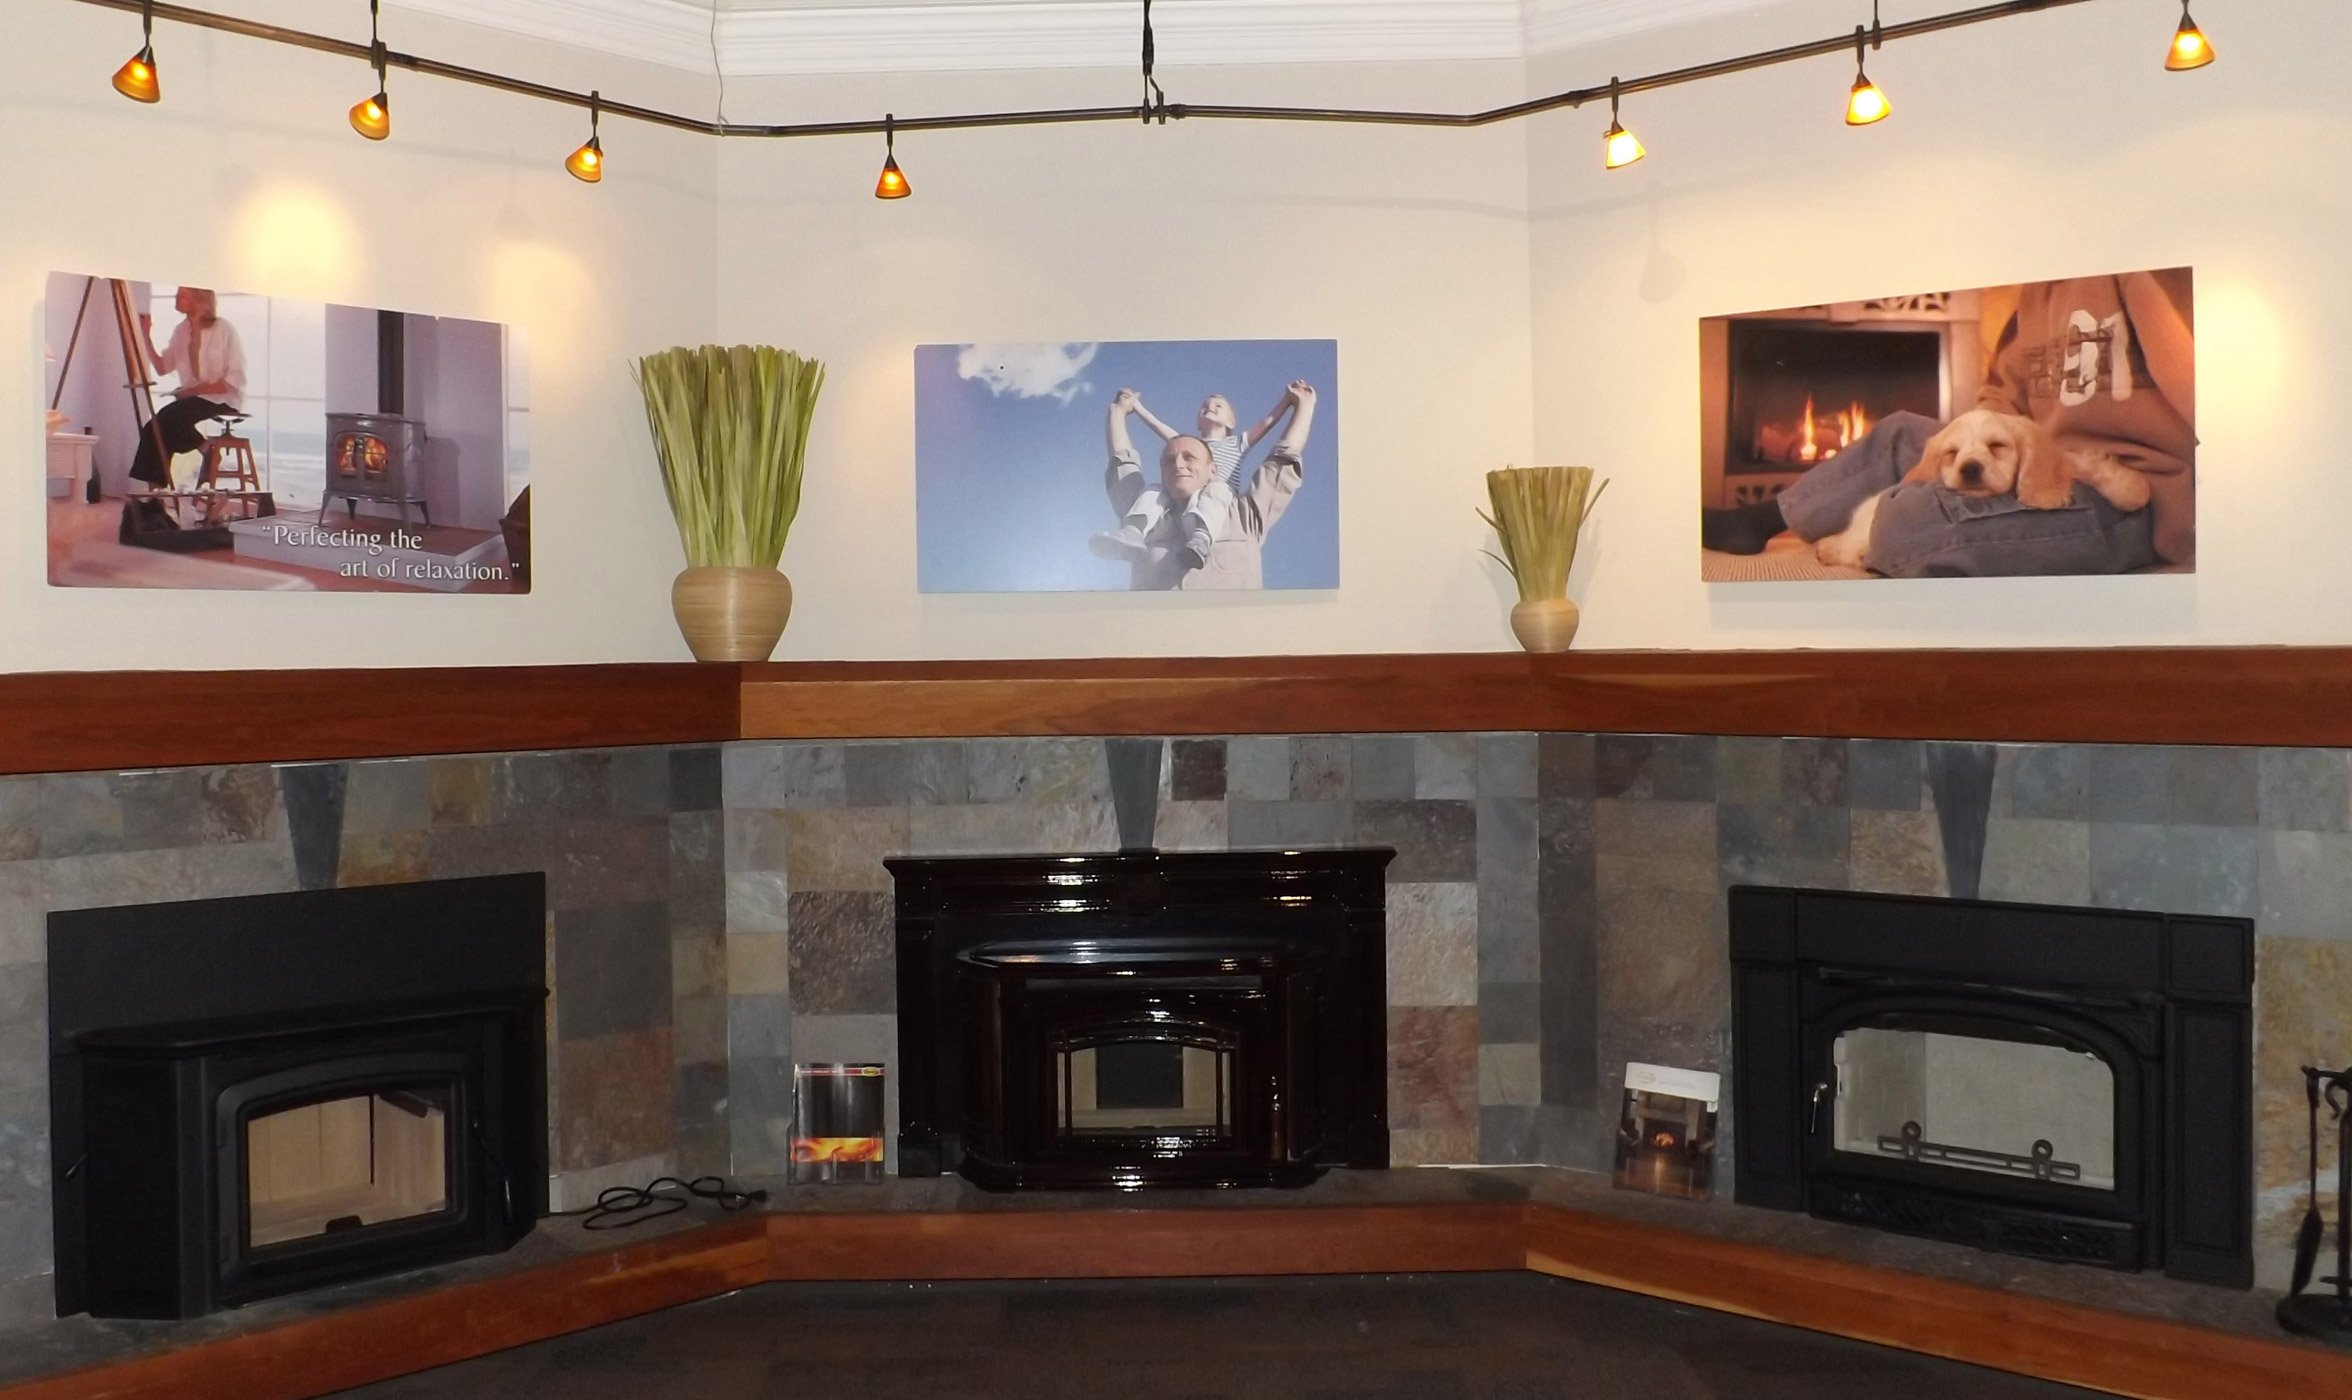 fireplace heating inc freestanding masonry screens custom stoll stores glass solutions accessories doors